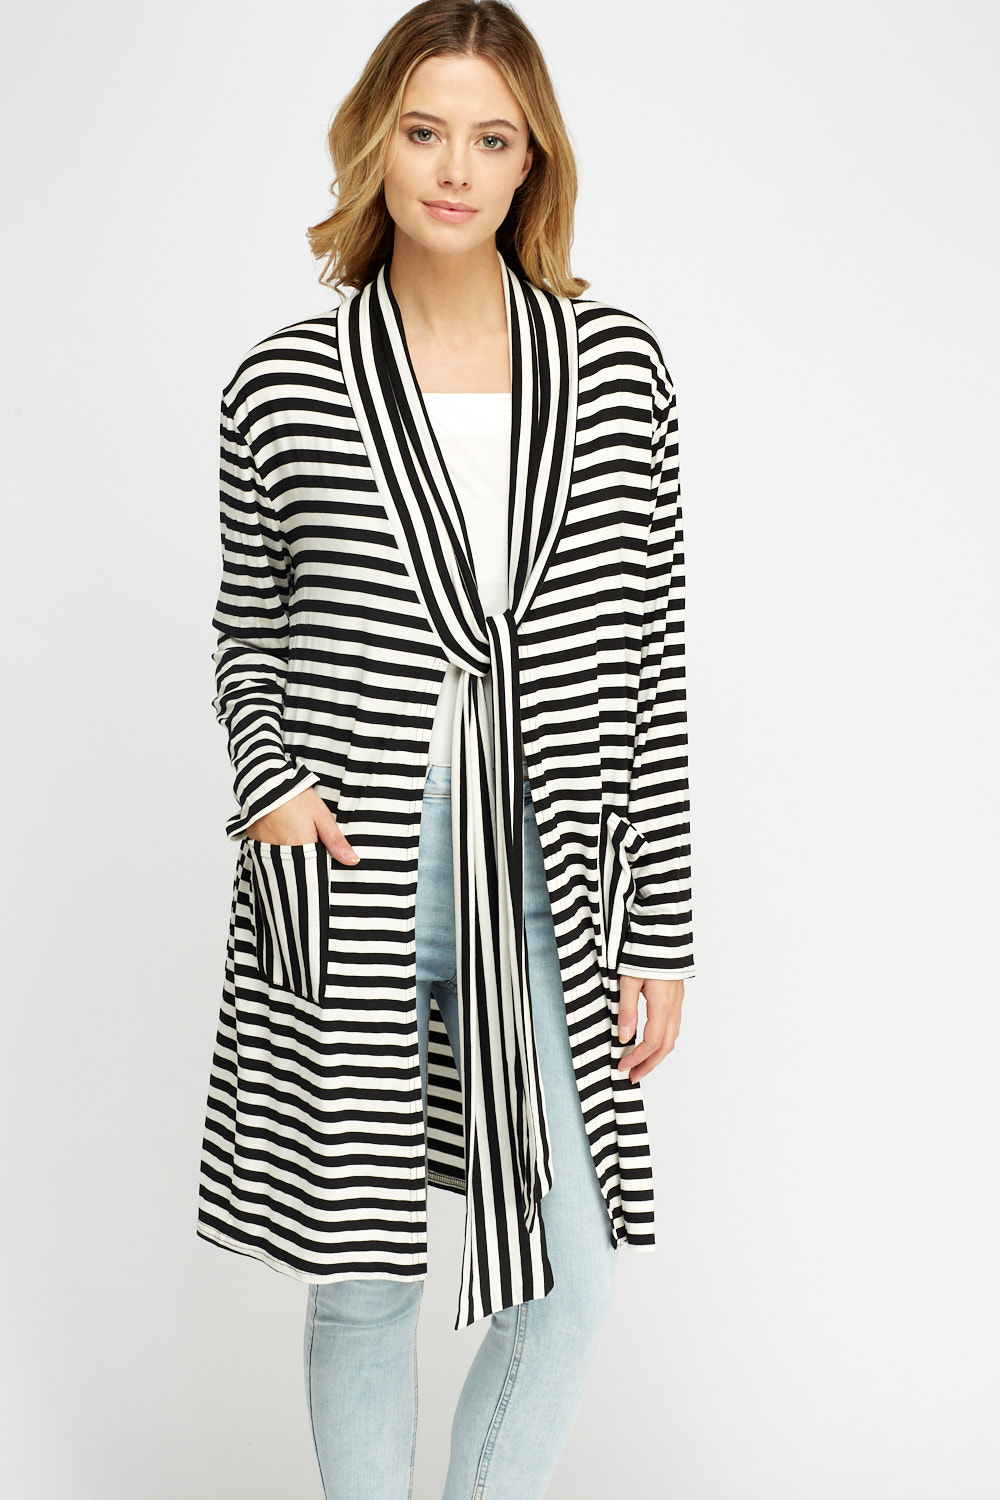 Striped Long Line Cardigan - White/Black - Just £5